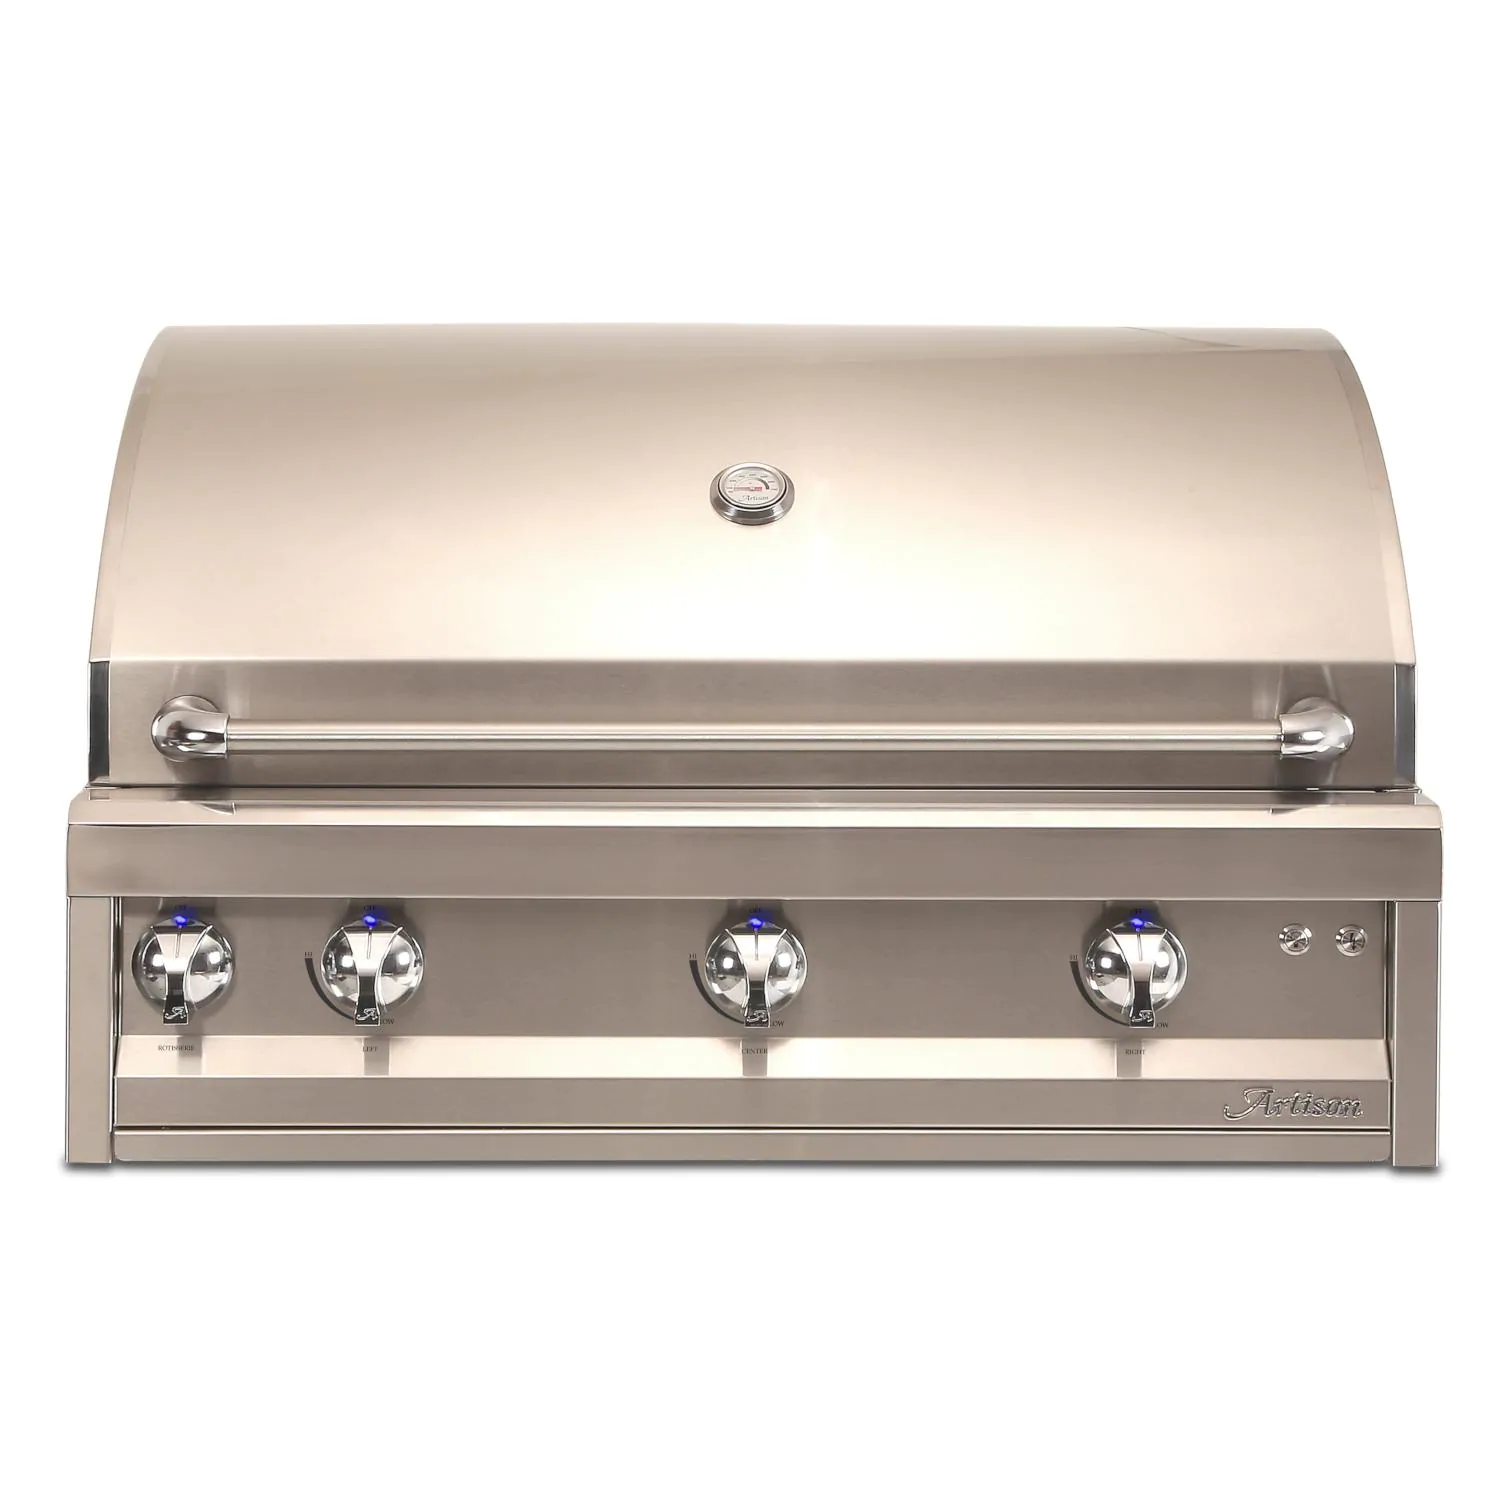 """Artisan Professional 36"""" 3-Burner Built-In Natural Gas Grill With Rotisserie - ARTP-36-NG"""